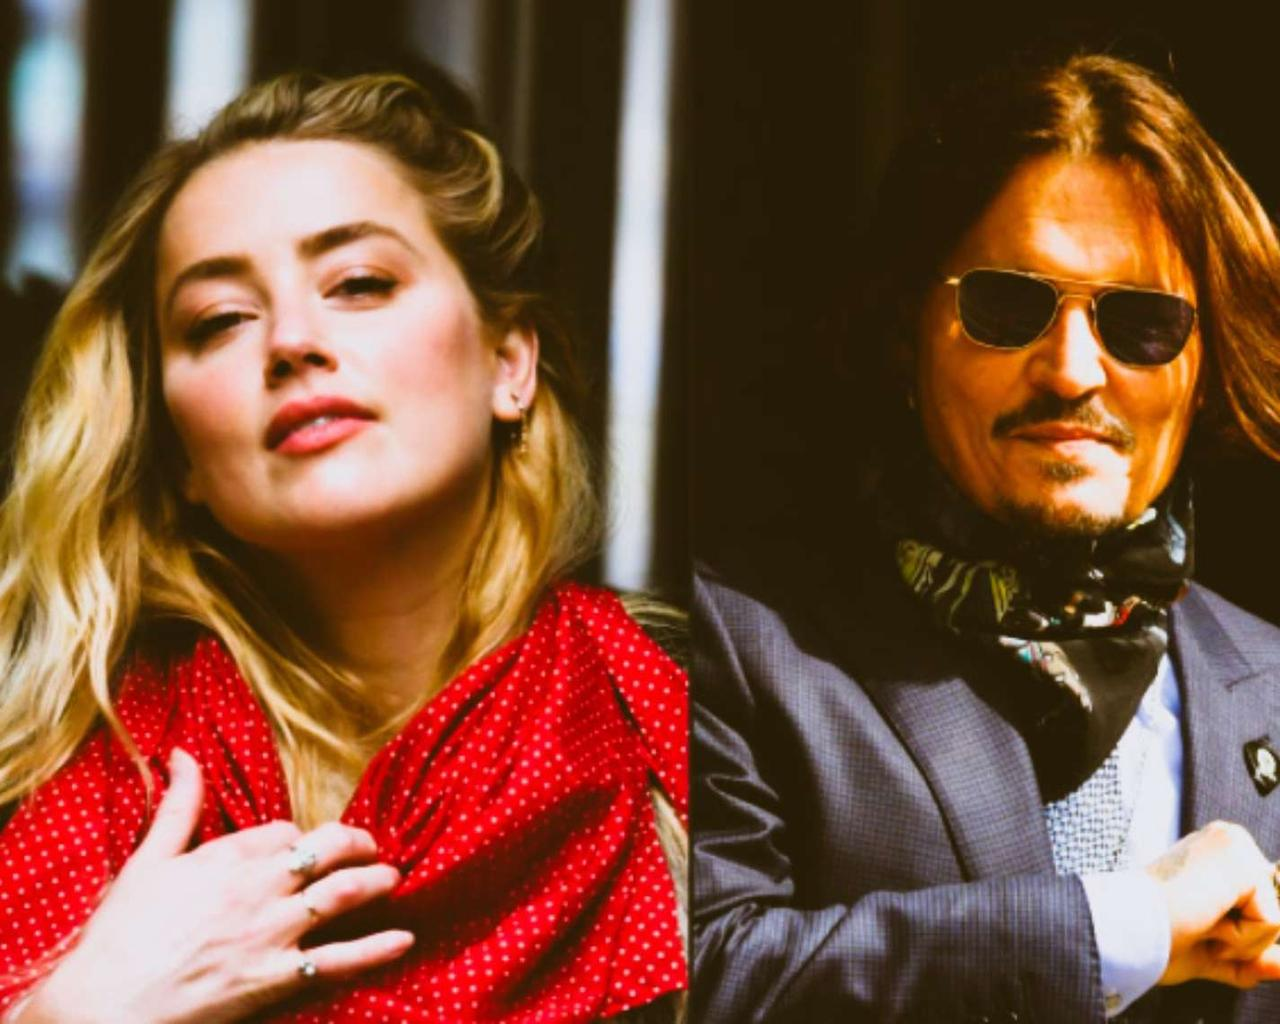 Amber Heard's give response to Johnny Depp's lawyer.